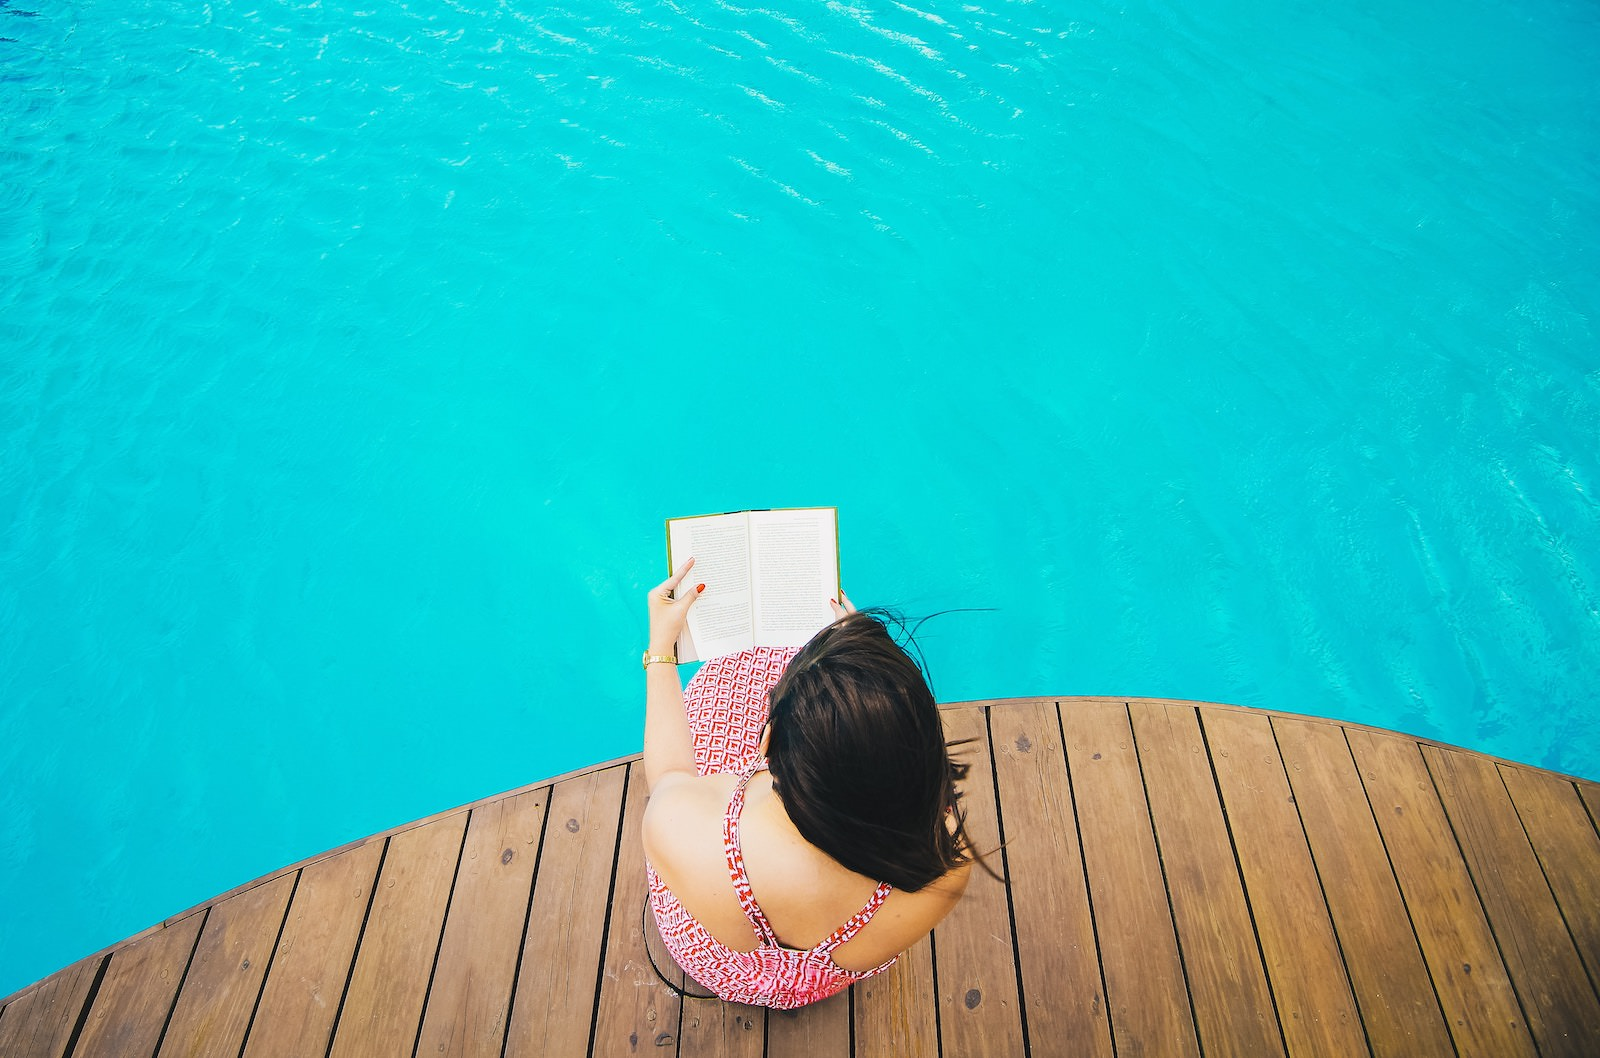 Angello lopez 260566 unsplash reading by the pool